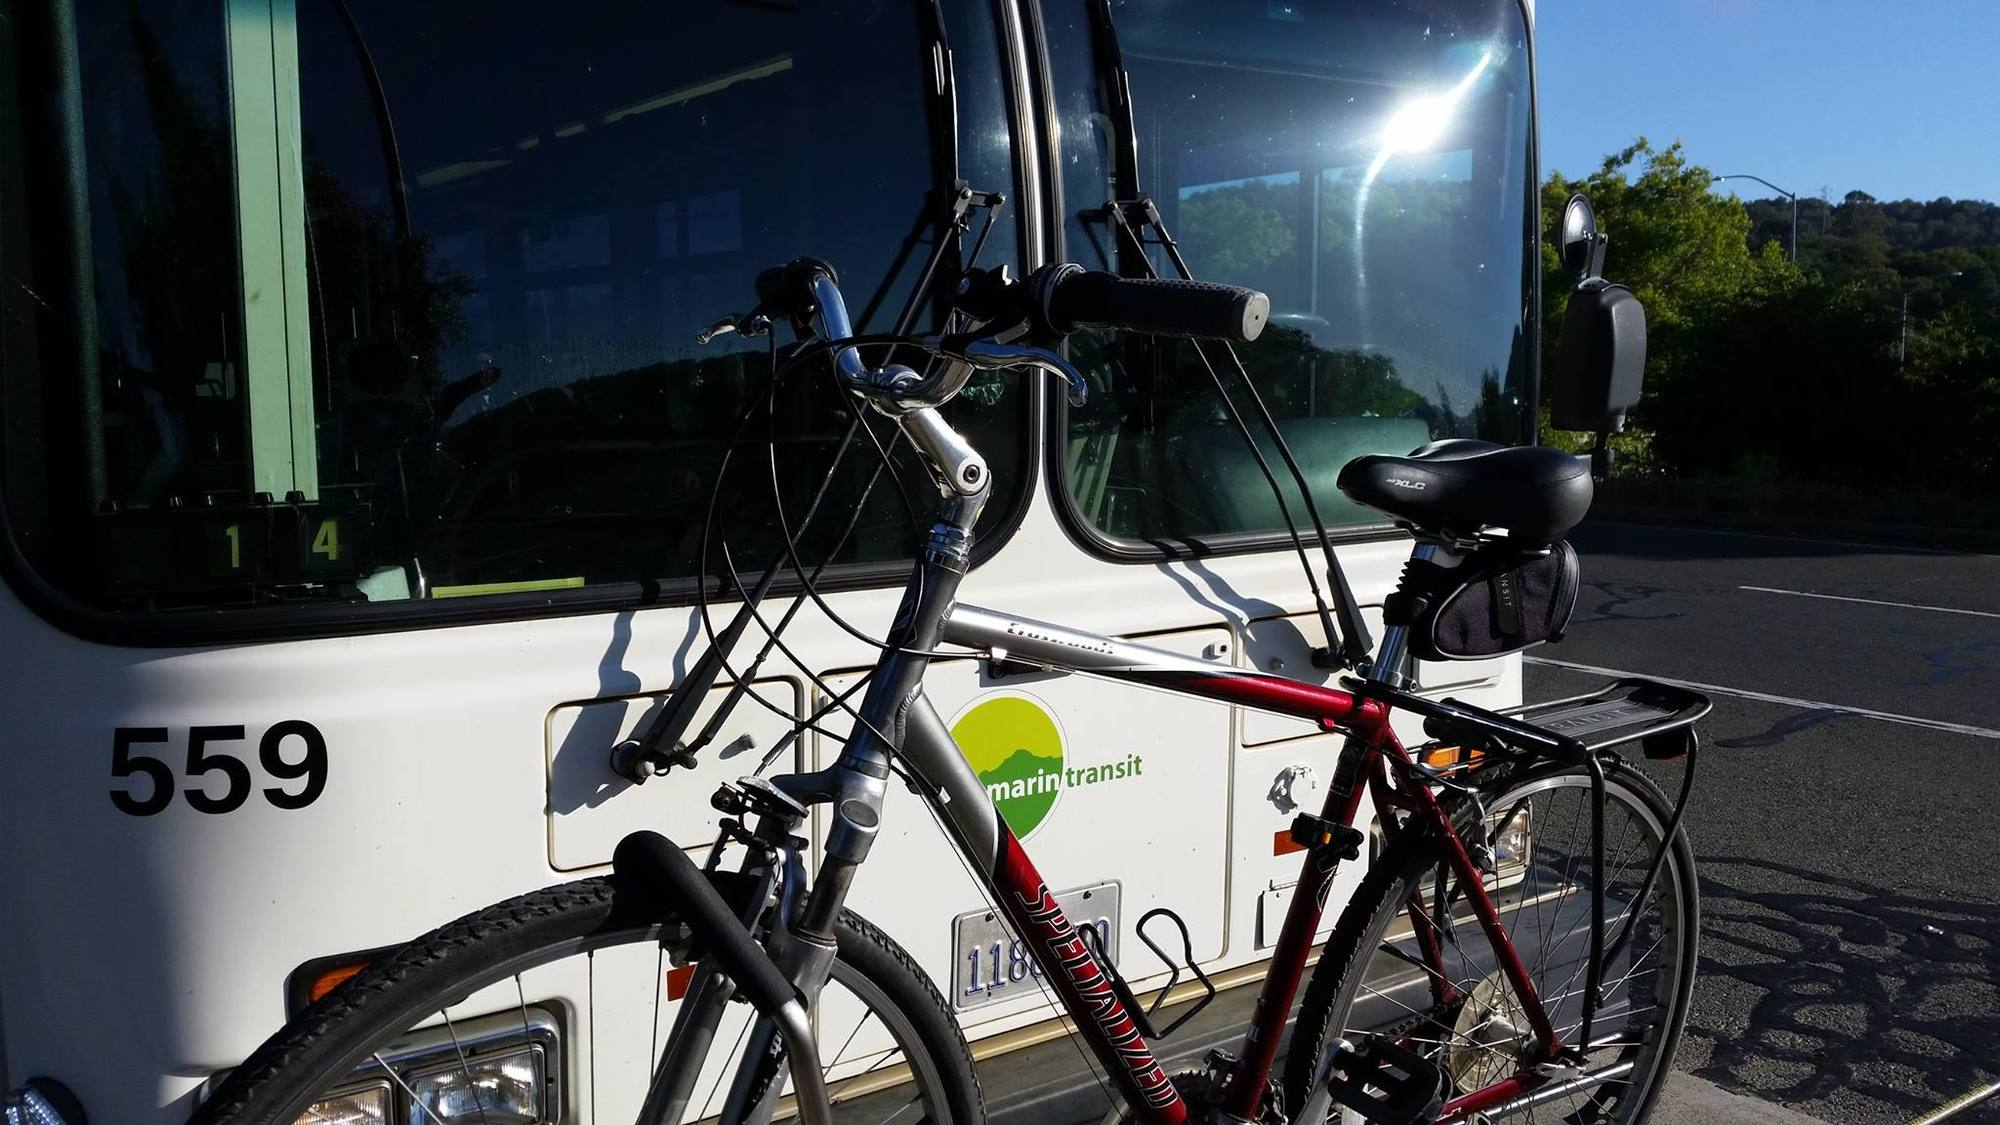 Bike on Marin Transit